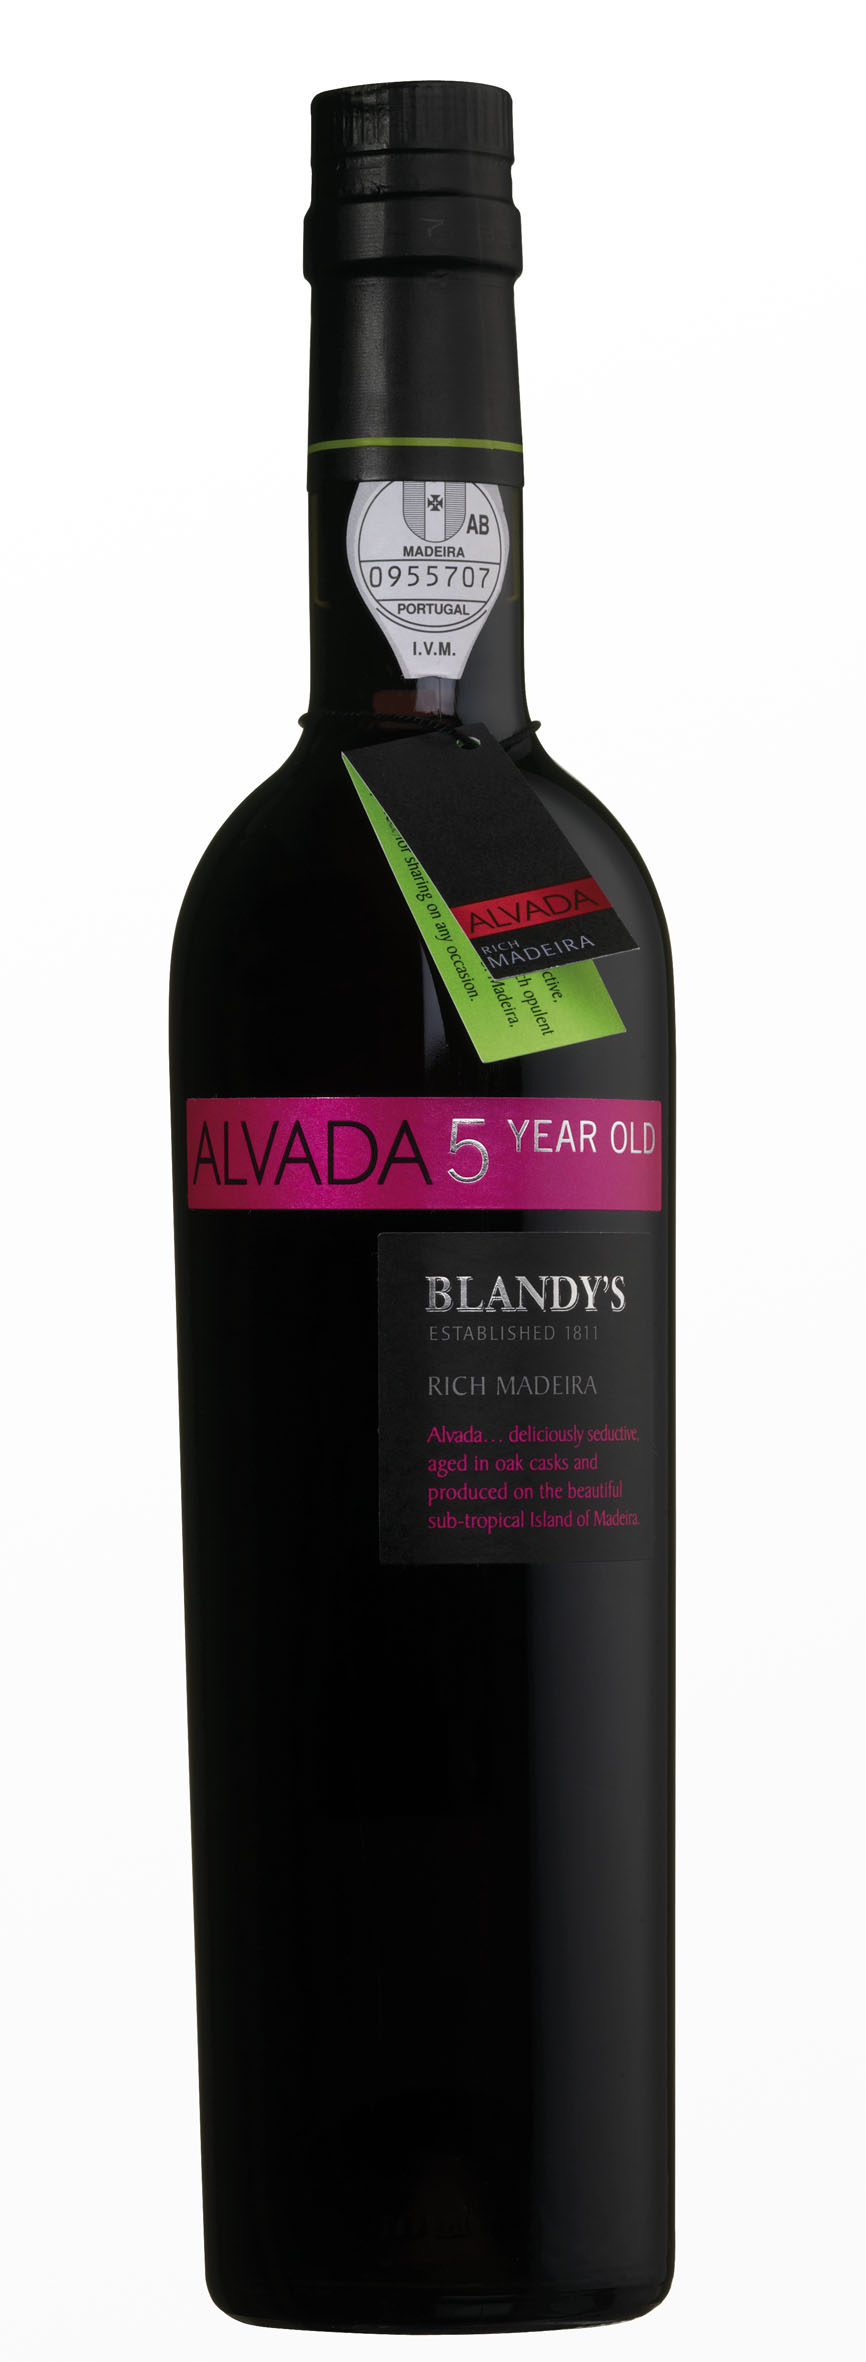 NV Blandy's Rich Madeira Alvada 5 Years Old